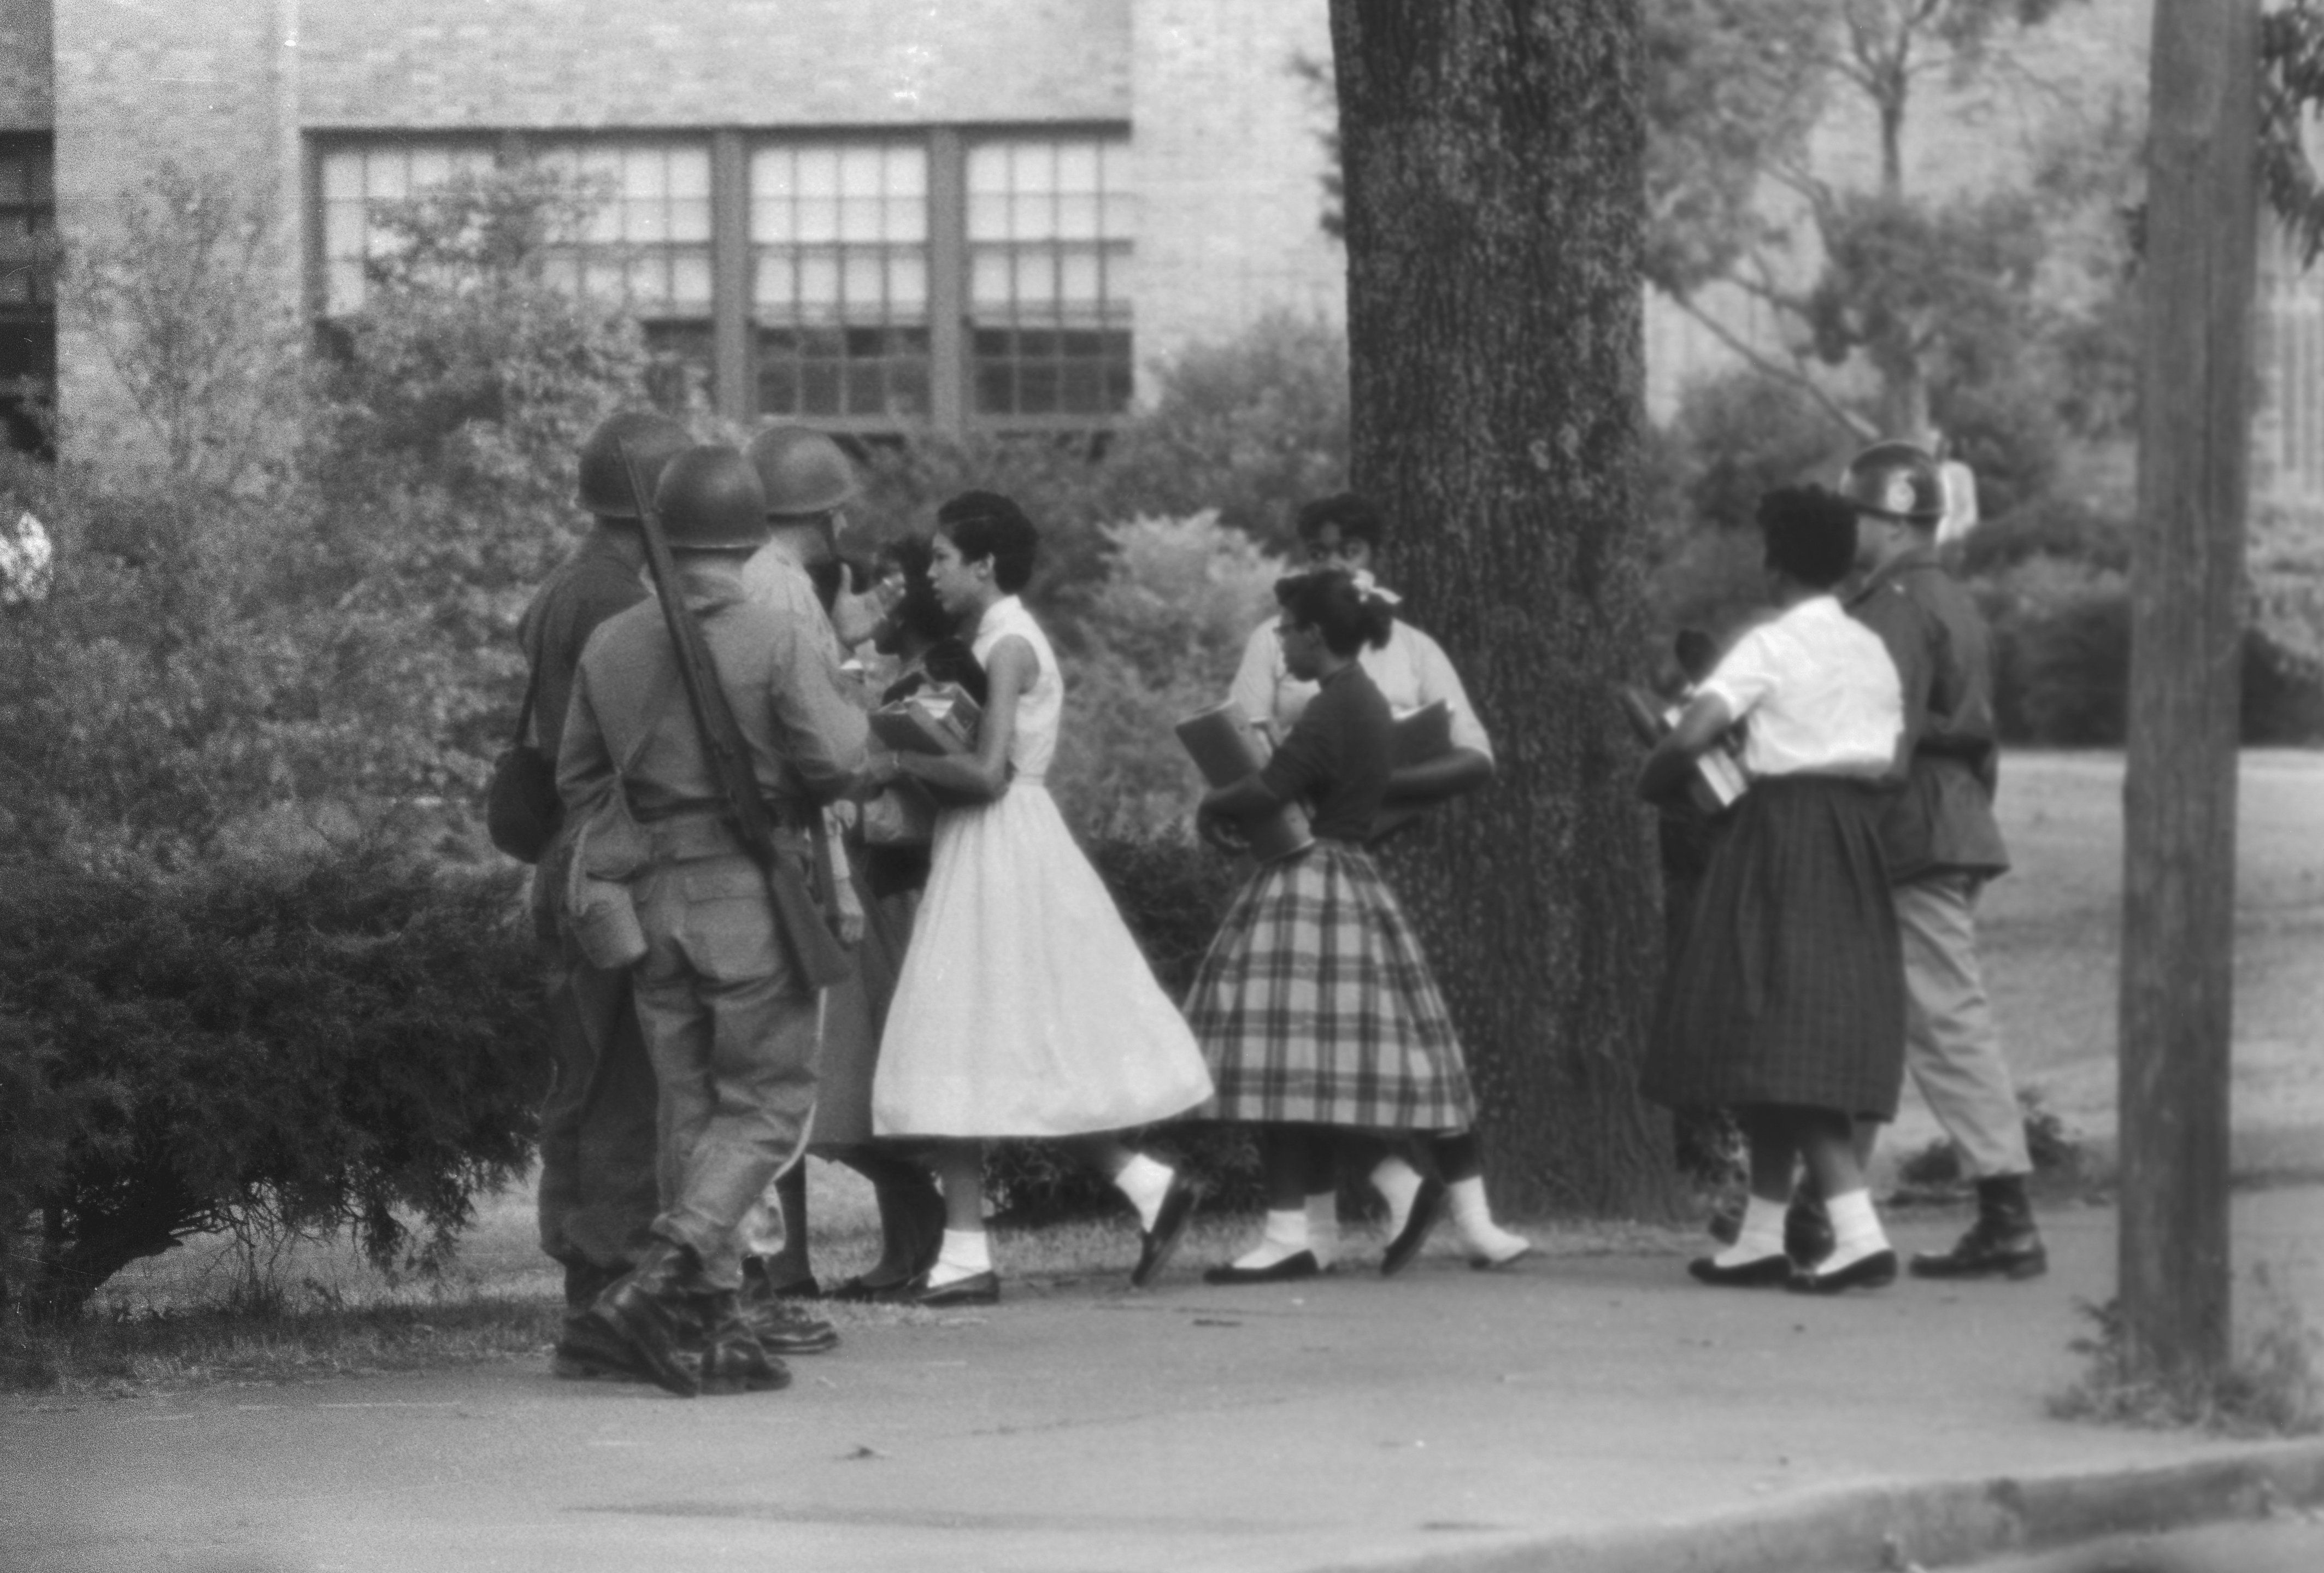 The group of nine African American students walk past members of the National Guard as they use a side door to enter Central High School in Little Rock, Arkansas, after the Federal court ordered the enforcement of desegregation laws. The students' previous attempts to enter the school were met by jeers from a crowd of onlookers and a group of white students blocking the main entrance.